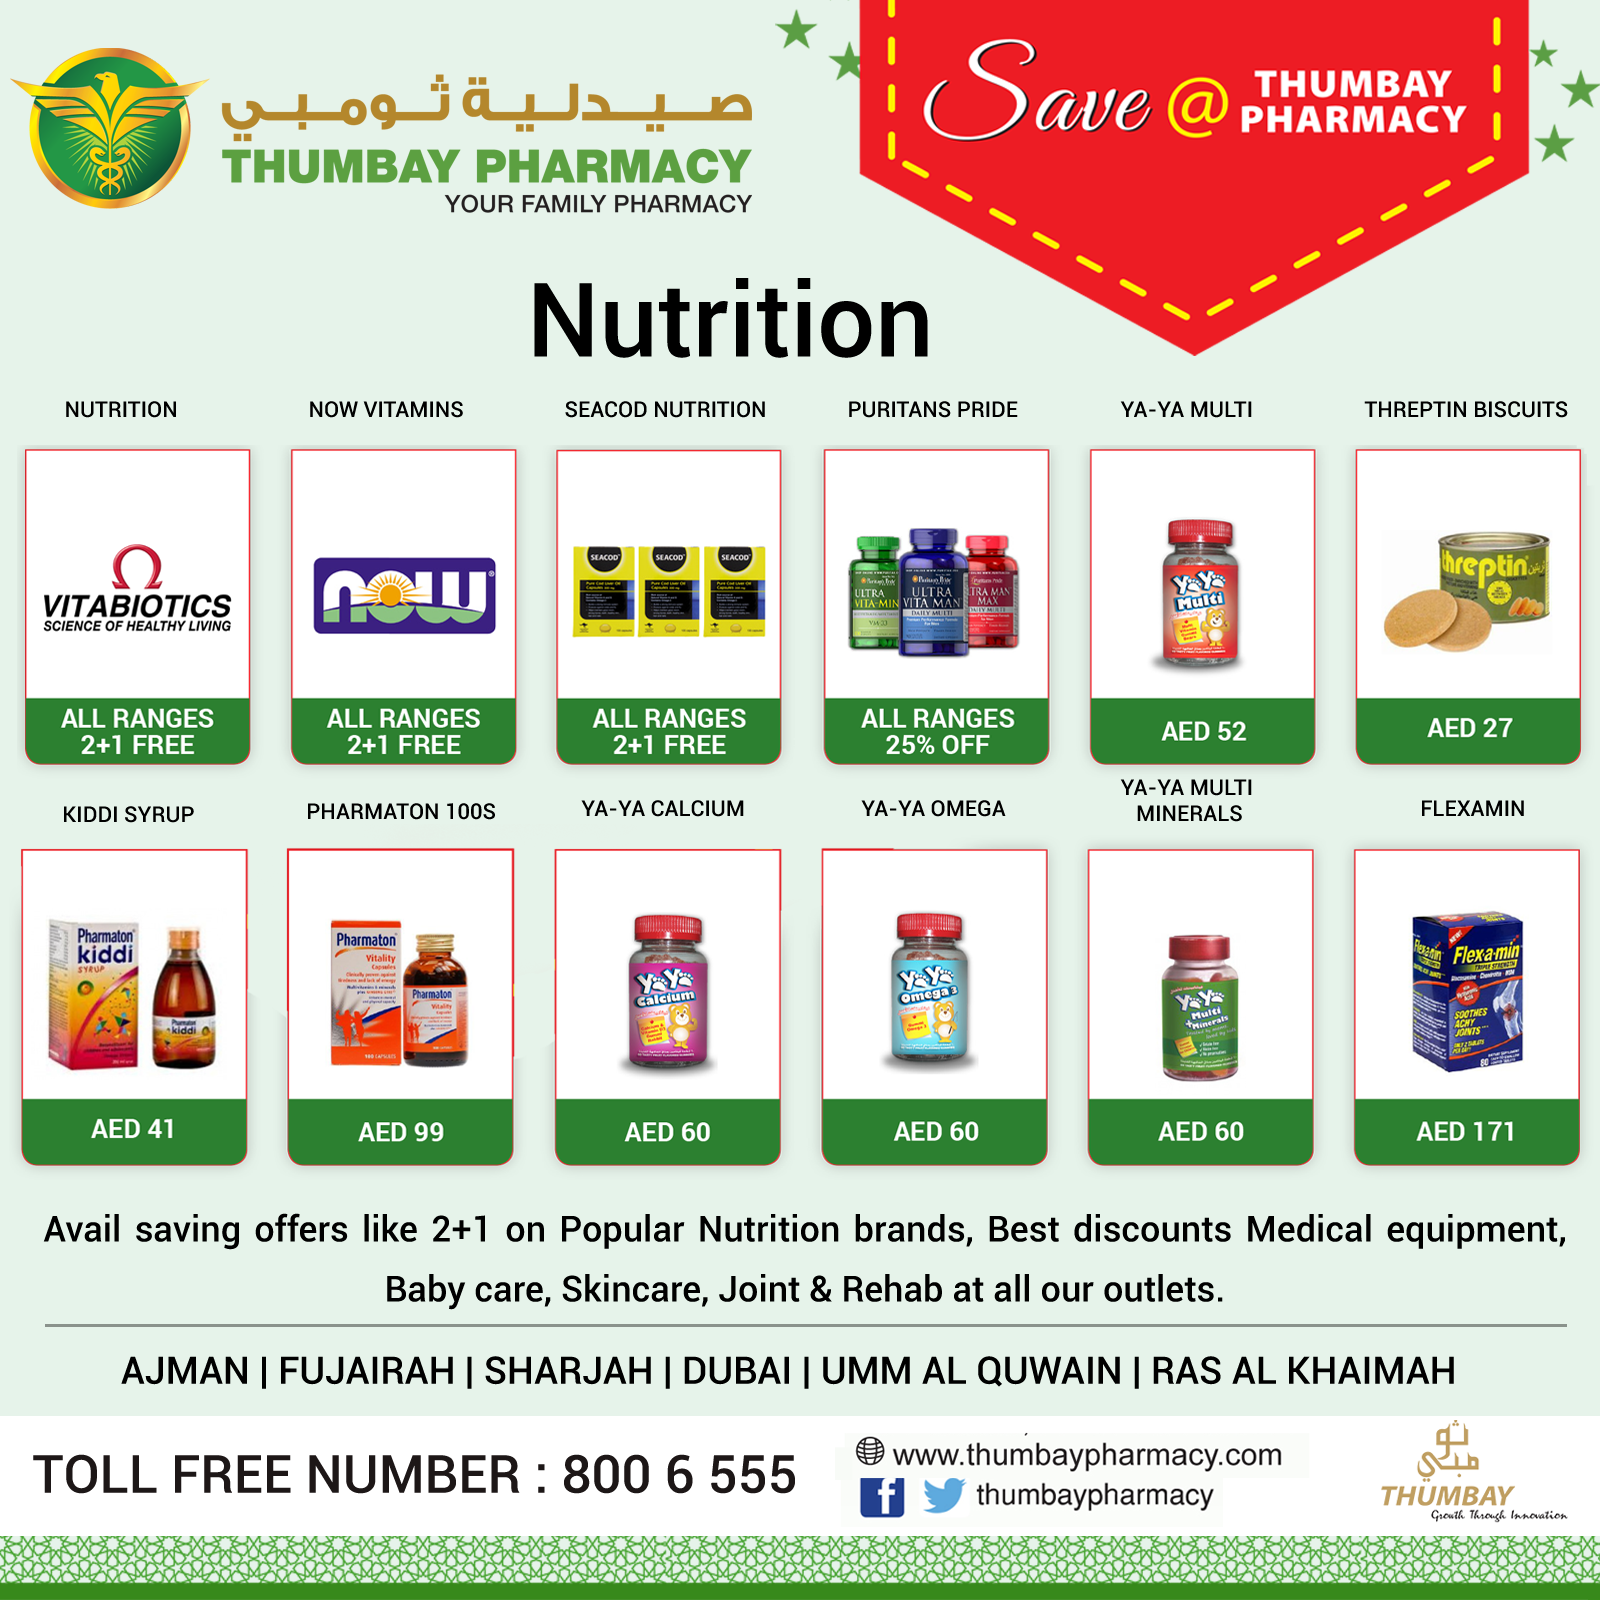 Avail Saving Offers At Your Nearest Thumbay Pharmacy Outlet Like 2